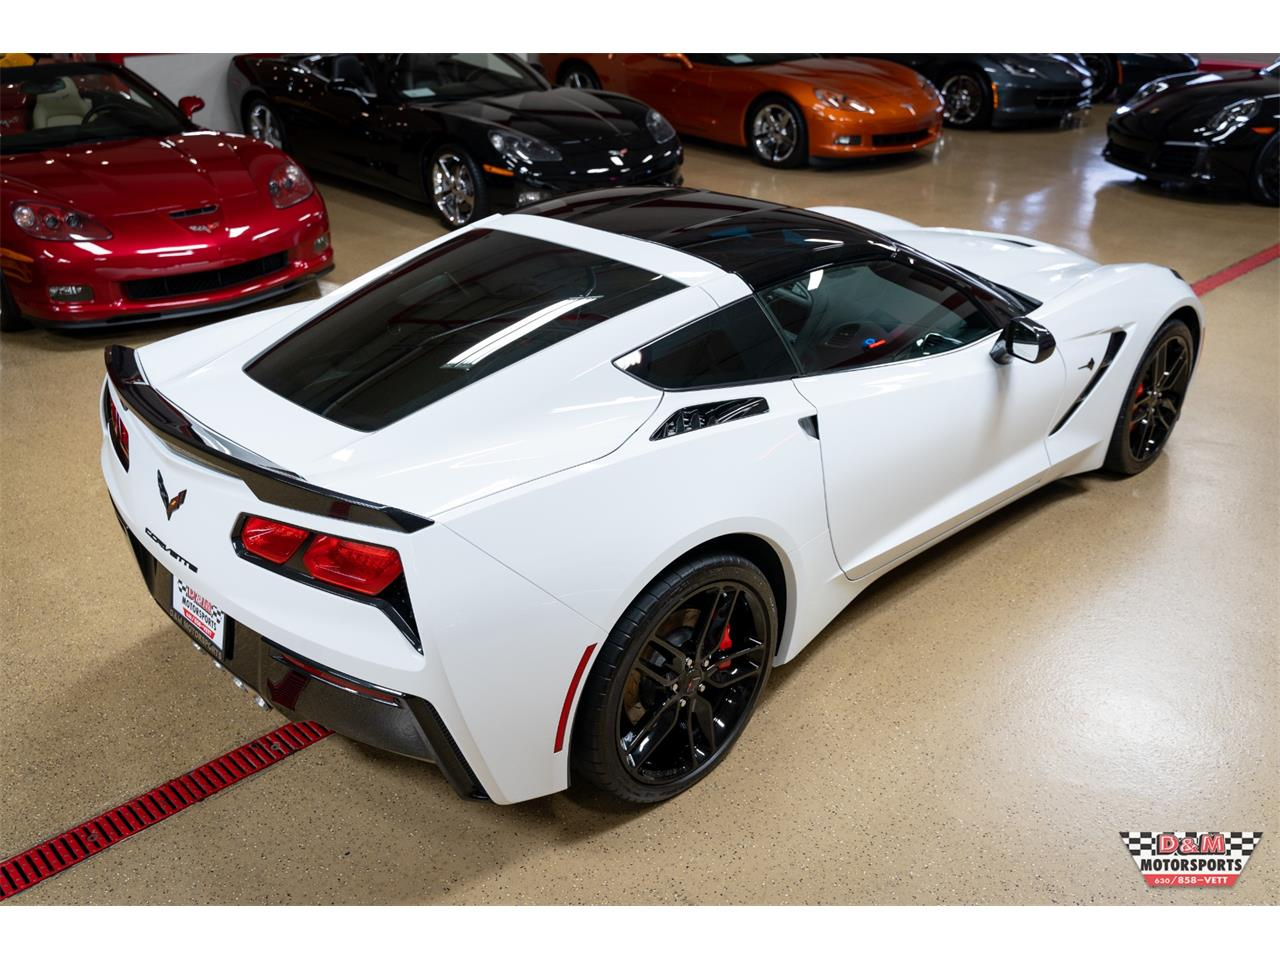 Large Picture of '16 Chevrolet Corvette located in Glen Ellyn Illinois - R2HE